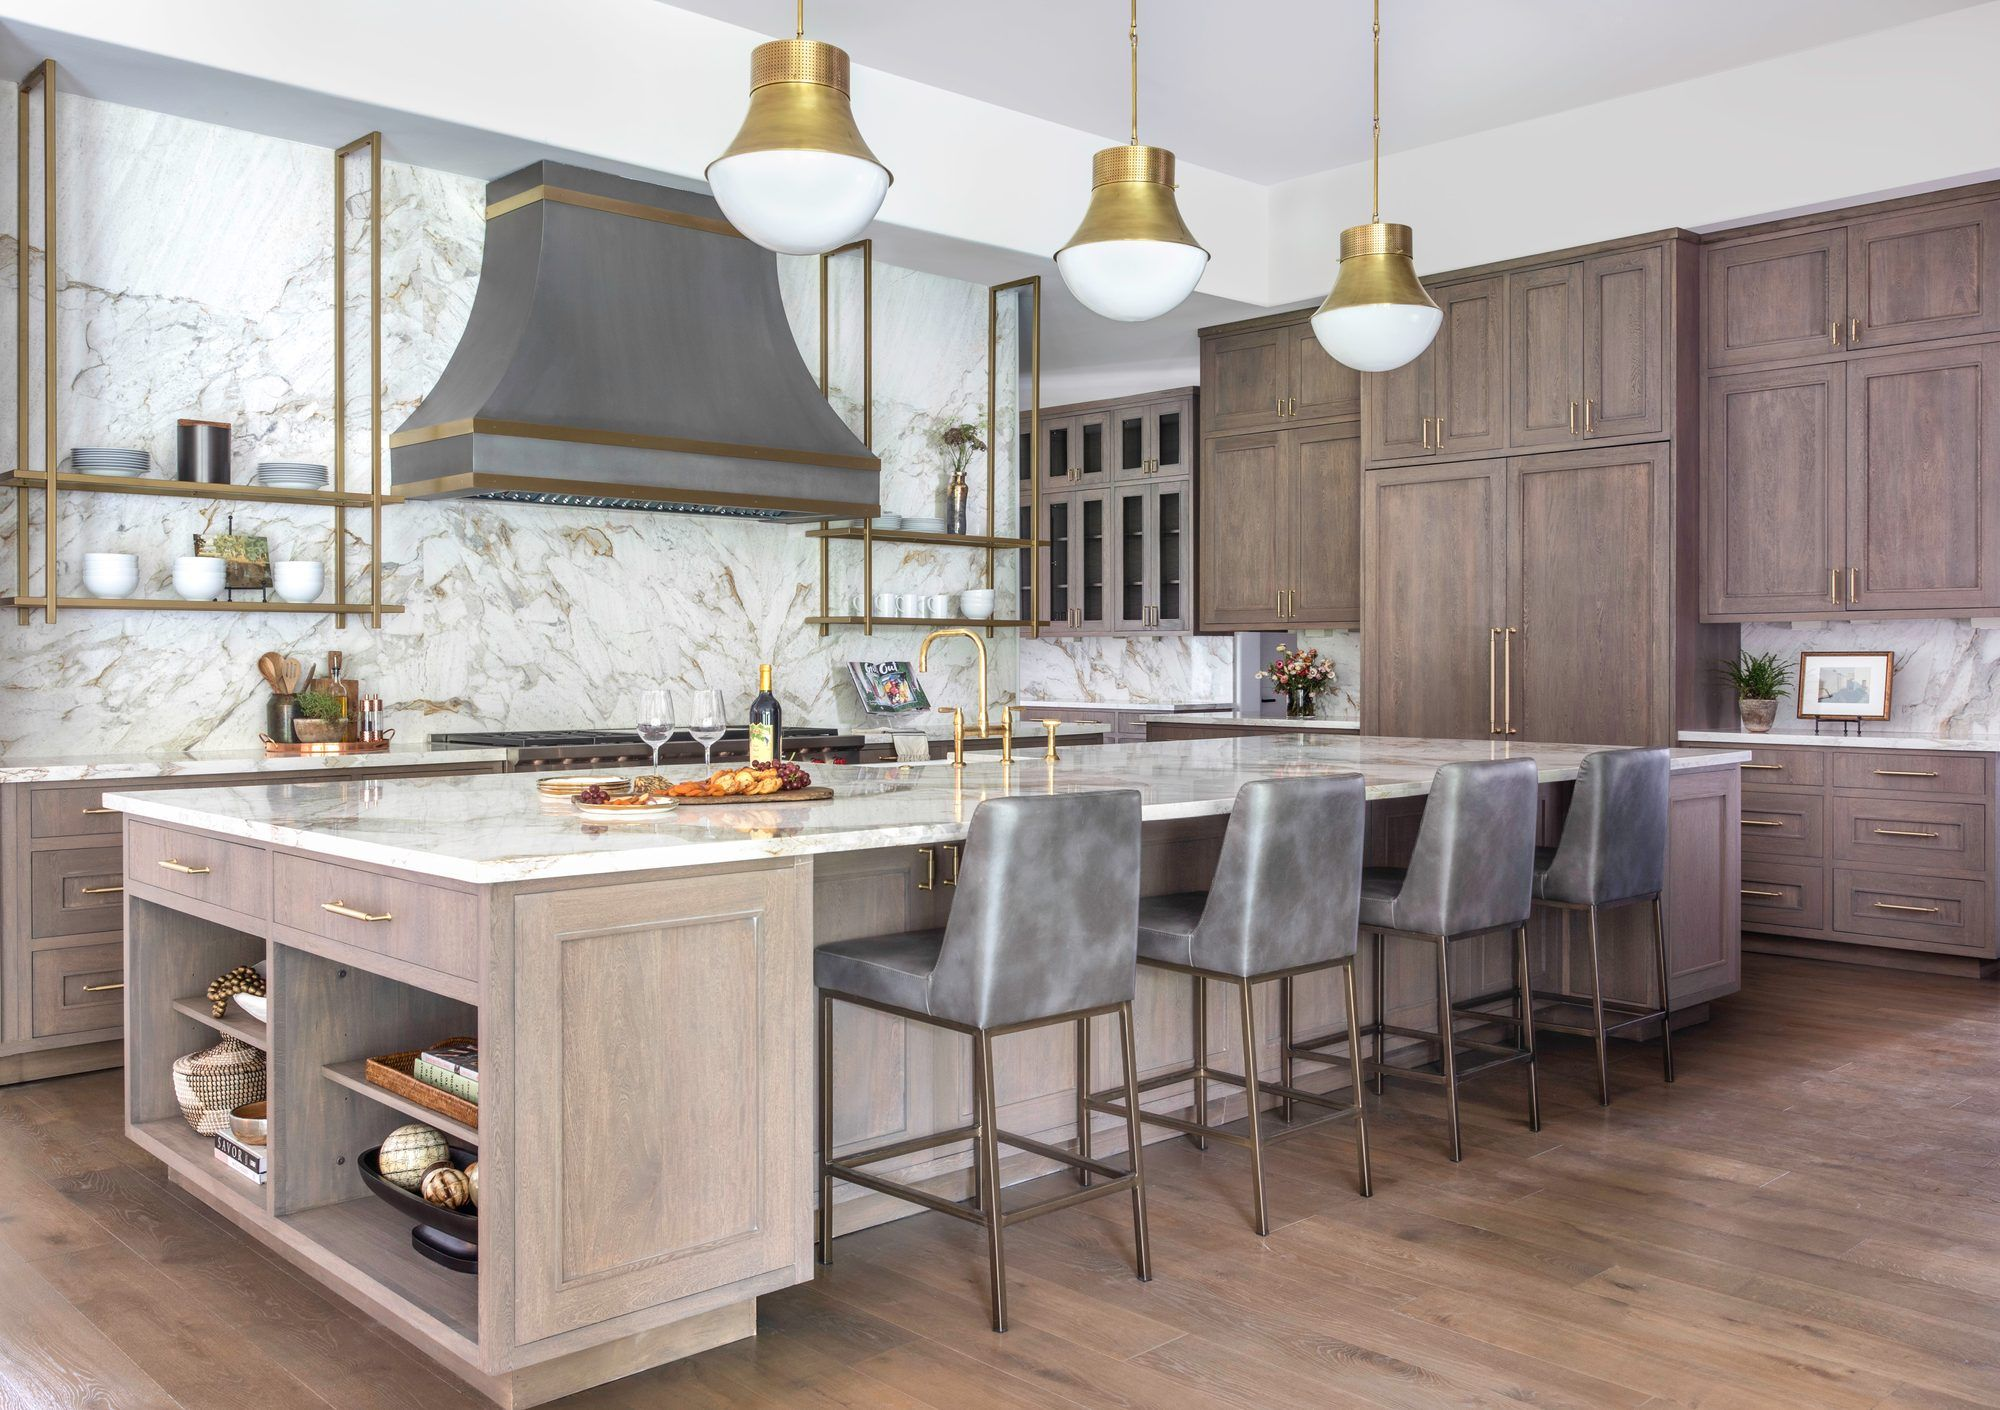 Contemporary French Chateau In Houston In Houston Tx United States For Sale 10988937 In 2020 Kitchen Views Tupper Lake Kitchen